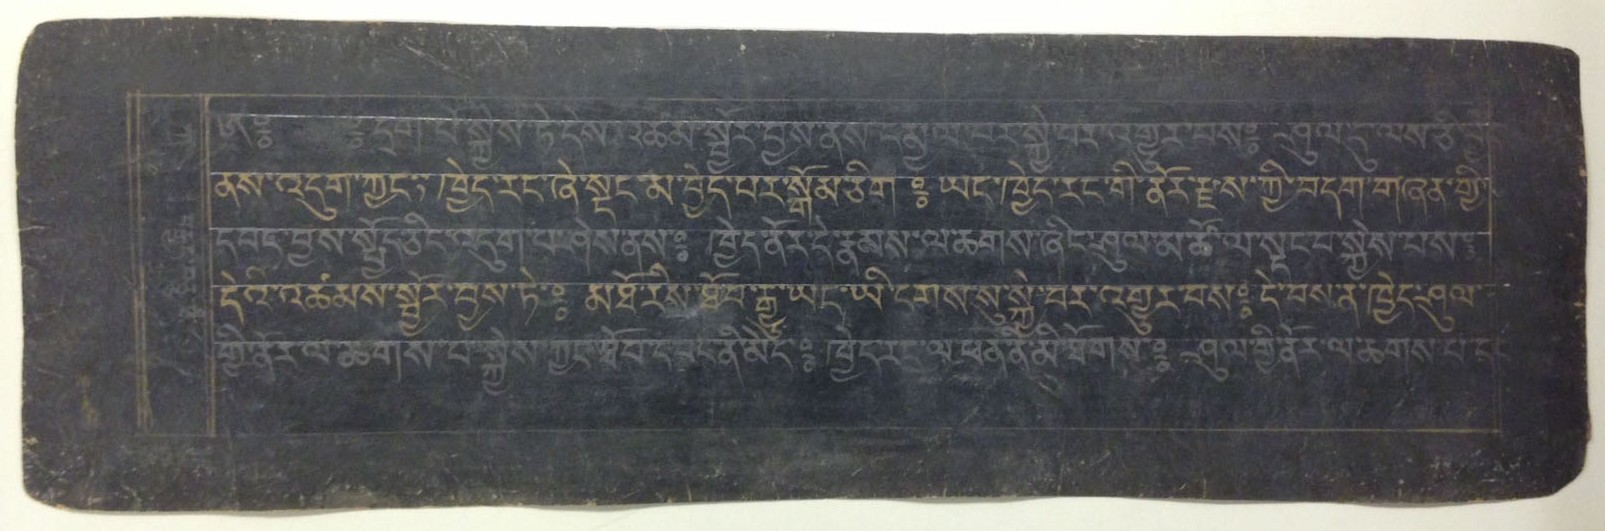 A page from an 18th-century manuscript copy of the Tibetan Book of the Dead. The text is written in alternating gold and silver ink. The blue-black lacquered paper was created by applying a lacquer made of yak-skin glue, animal brains, and soot, which was then burnished to create an appropriate writing surface.   (MSS 14259)